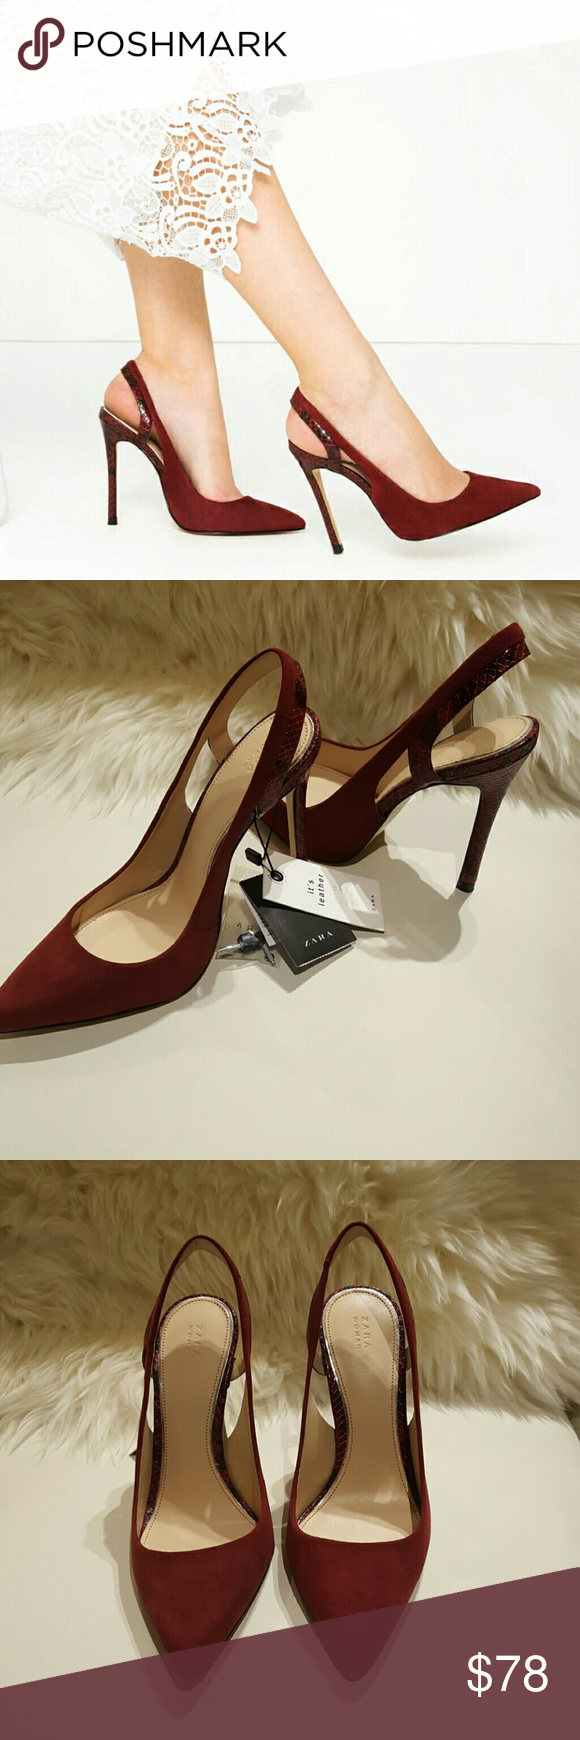 f12884509fa Zara Leather Slingback Heels NWT Burgundy high heel leather slingback shoes  opening detail on the sides heel with animal effect contrasting finish heel  ...